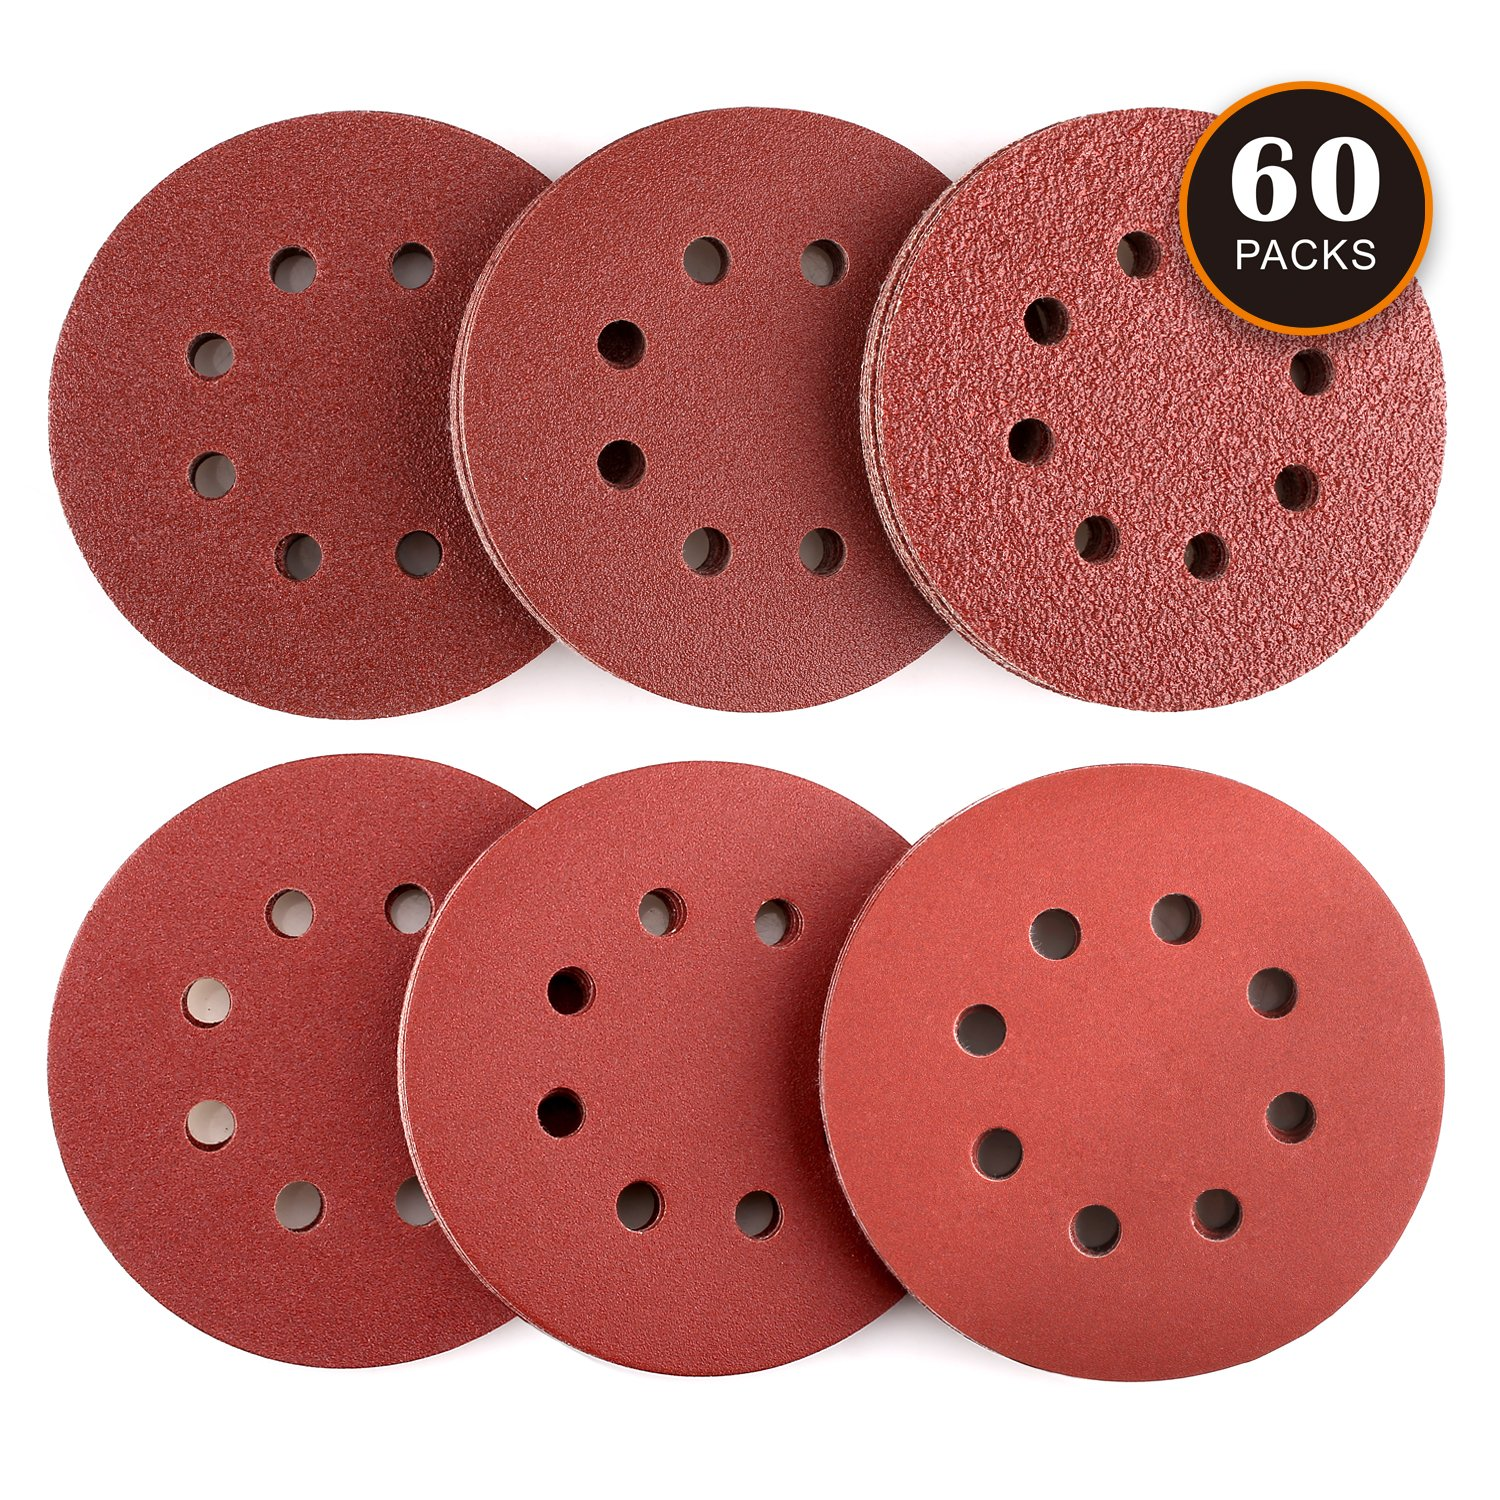 Tacklife Sanding Discs, 60 PCS Extra Thick Sander paper, 5 Inch 8 Holes Dustless Hook and Loop, 40/60/80/120/180/240 Grit Sandpaper, Ideal for Sanding / Polishing / Derusting - ASD03C